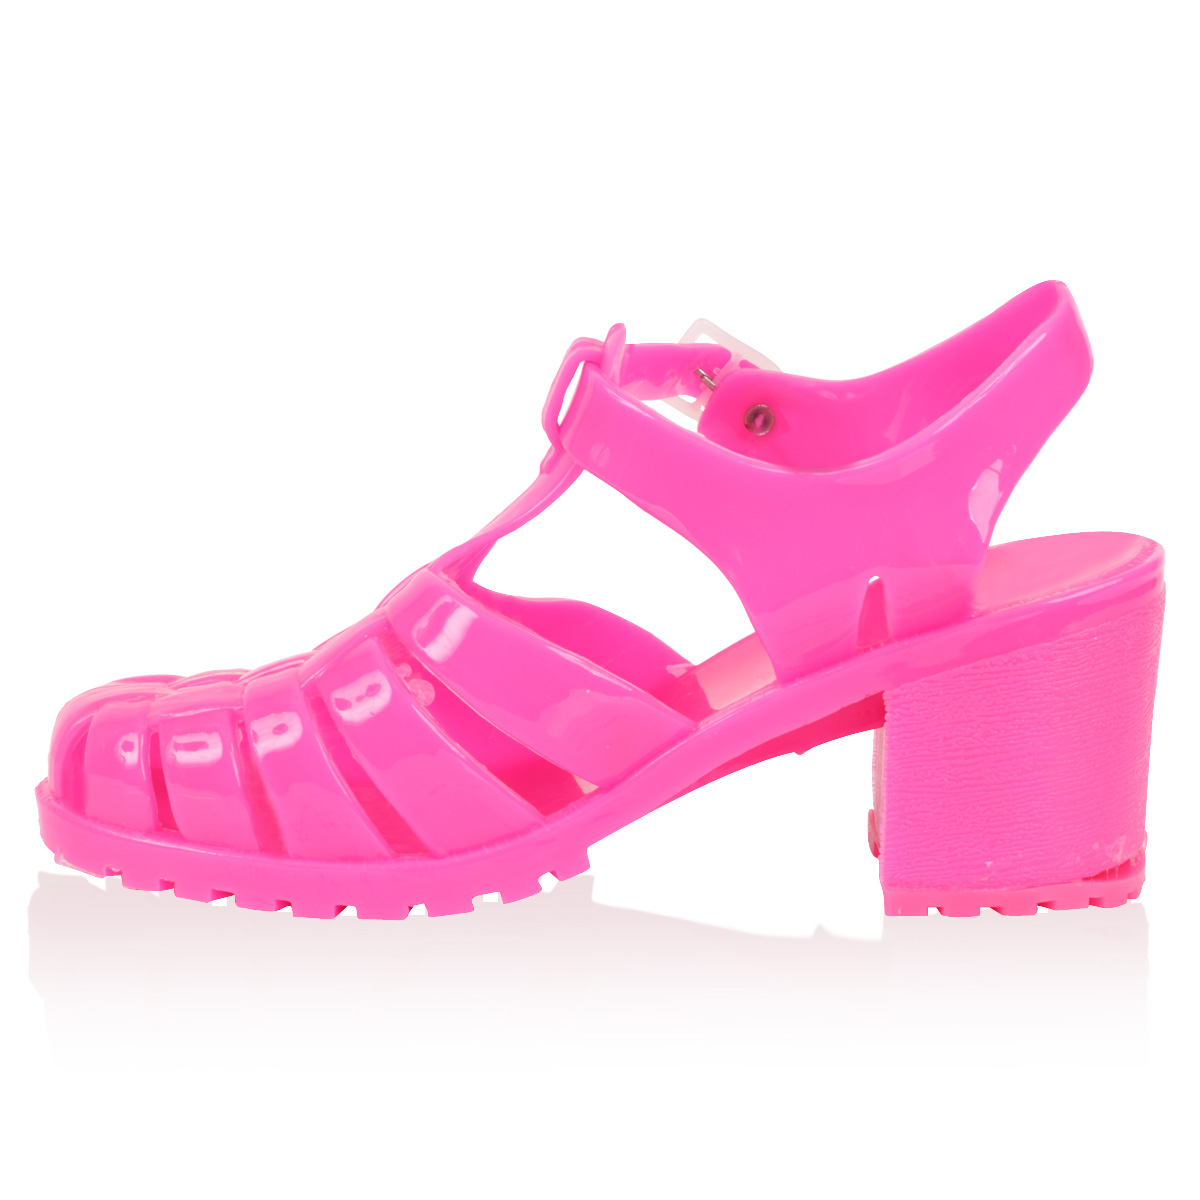 Women's jelly sandals size 10 - Ladies New Block Heel Womens Plastic Summer Beach Jelly Sandals Shoes Size 3 6